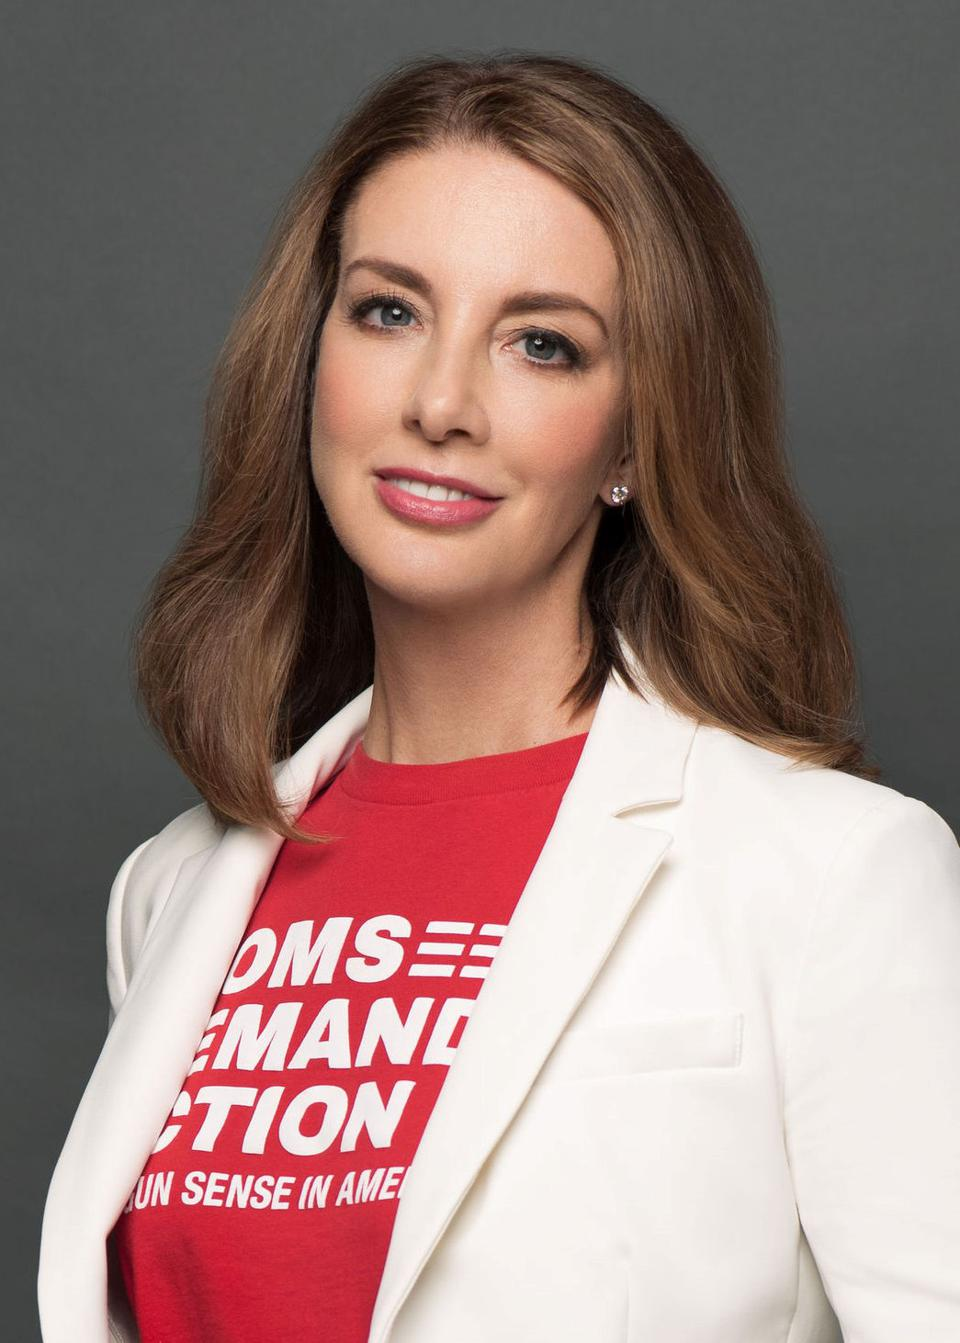 Shannon Watts, Founder of Moms Demand Action